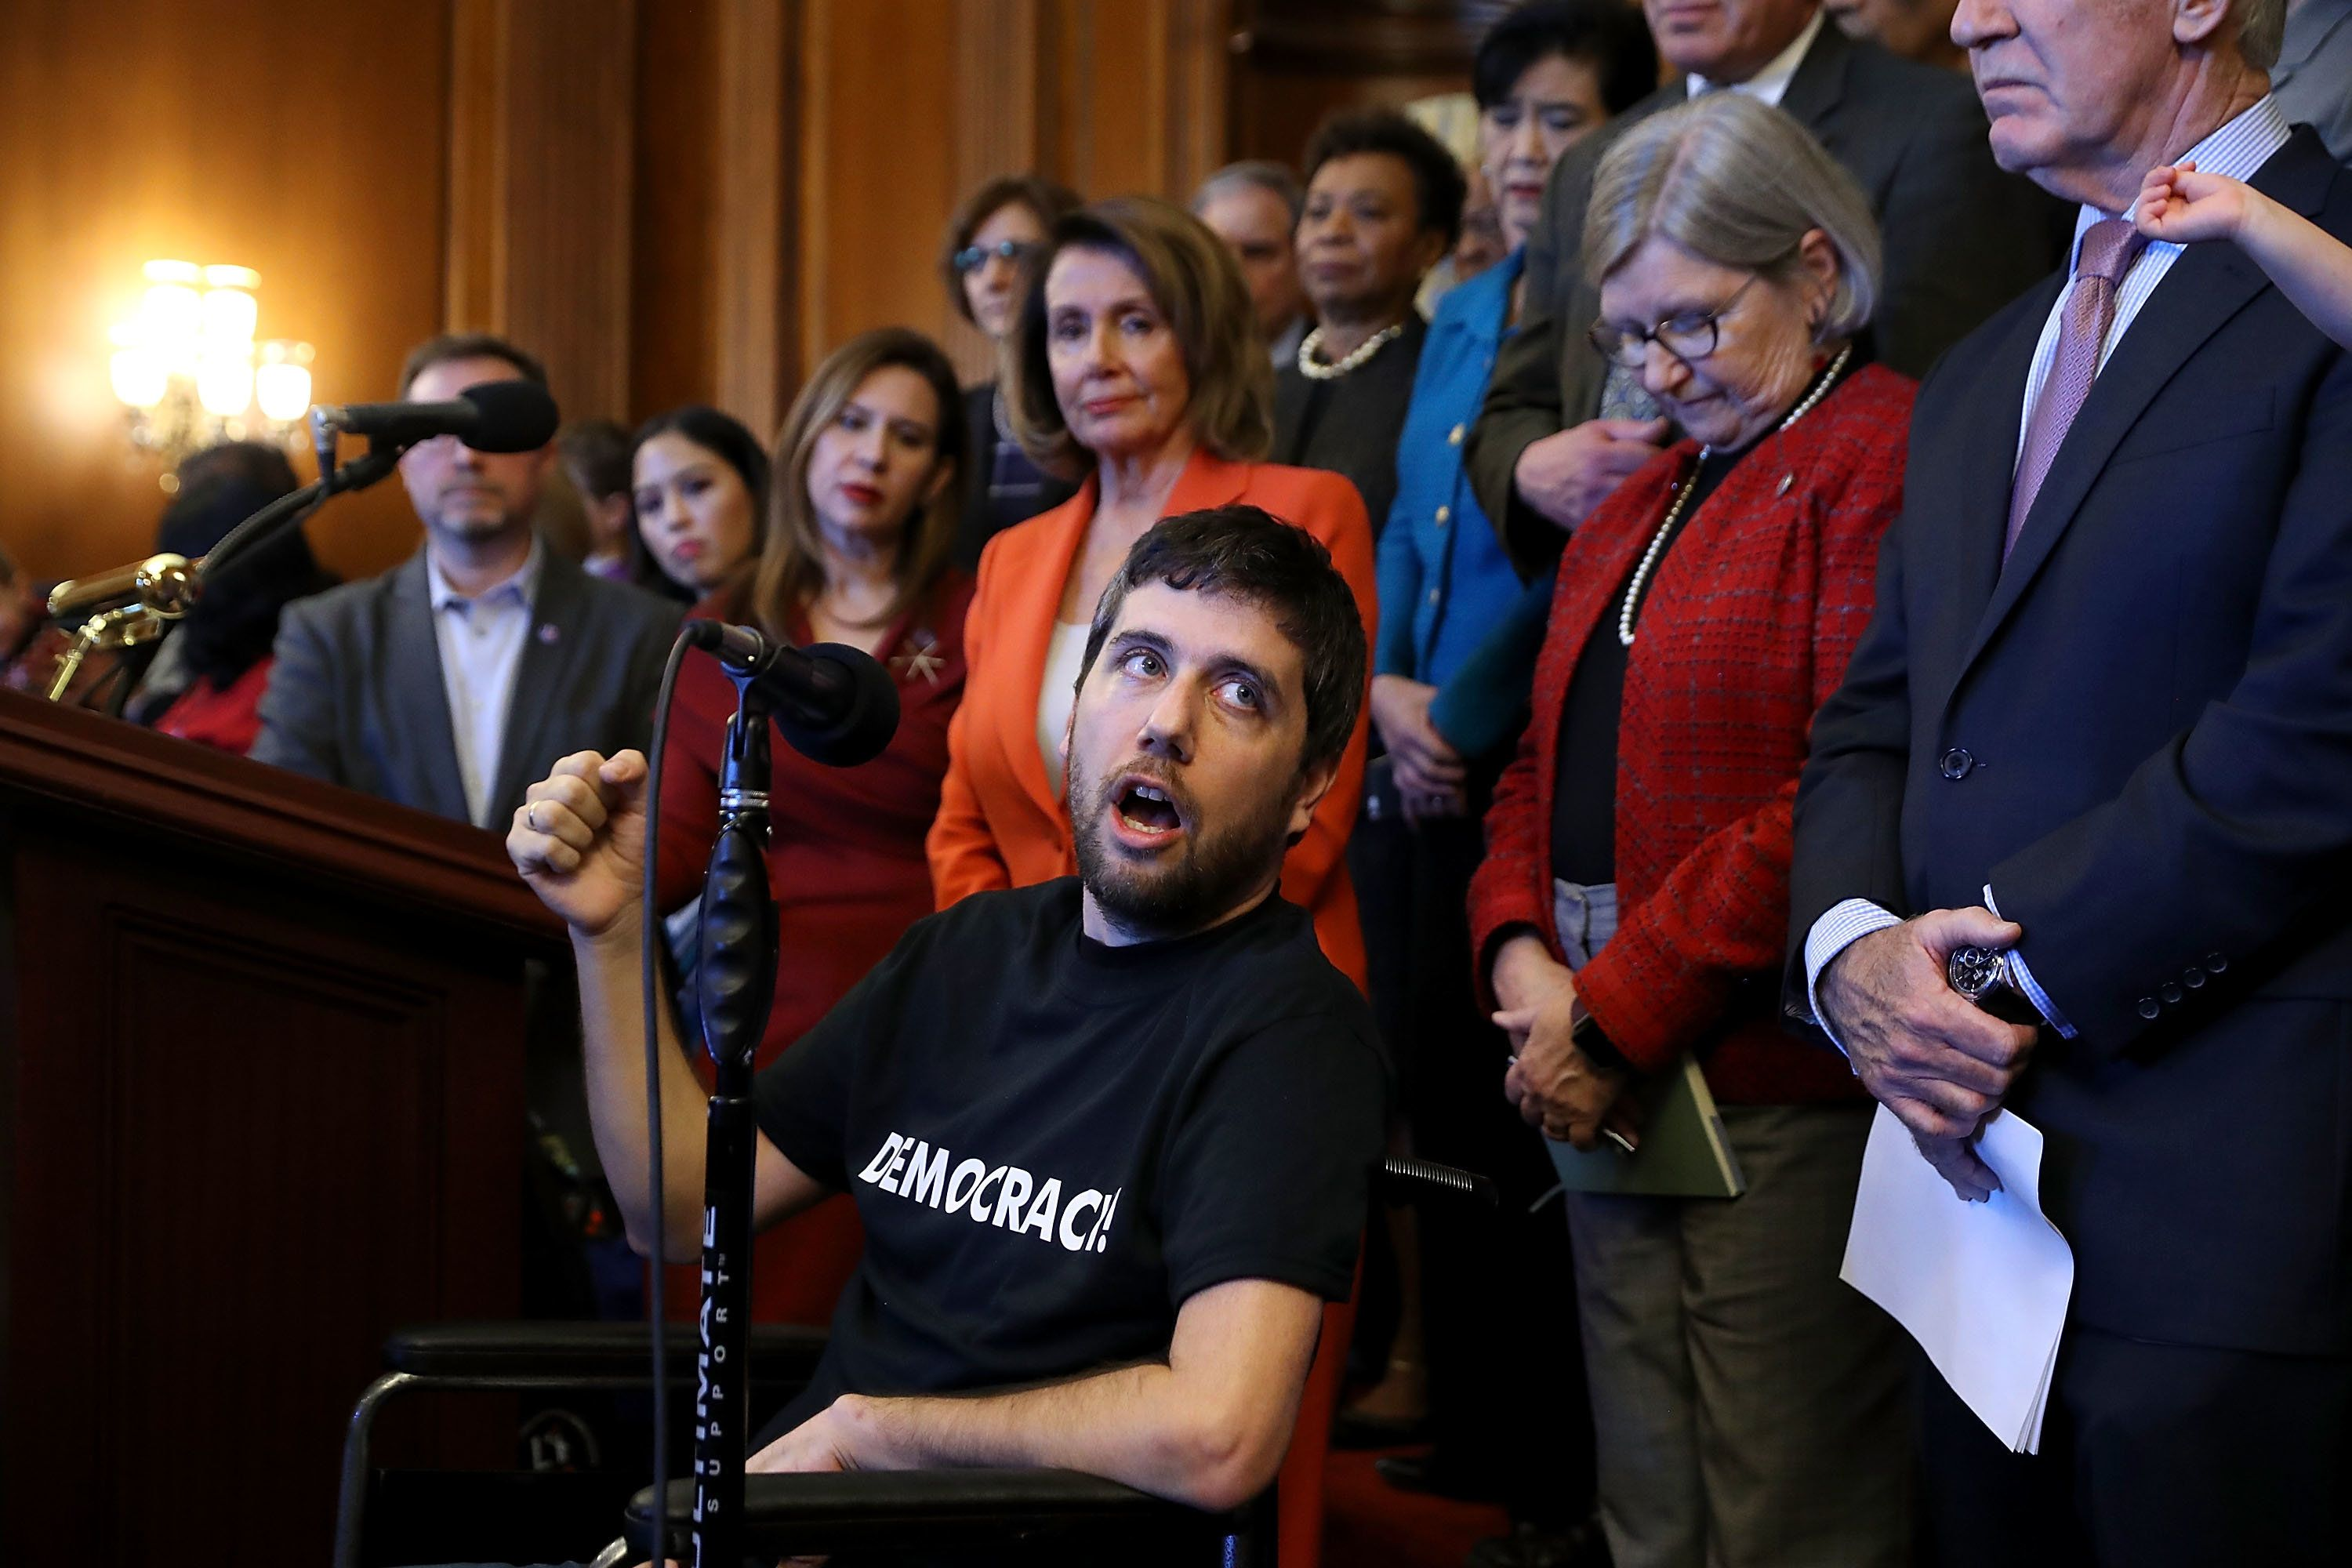 WASHINGTON, DC - DECEMBER 19:  Ady Barkan (C), who lives with Amyotrophic Lateral Sclerosis, delivers remarks during a rally organized by House Minority Leader Nancy Pelosi (D-CA) in the Rayburn Room at the U.S. Capitol December 19, 2017 in Washington, DC. Pelosi and fellow House Democrats invited people with complex medical needs and disabilities who rely on Medicare to rally with them before the House was to vote on the Tax Cuts and Jobs Act. (Photo by Chip Somodevilla/Getty Images)